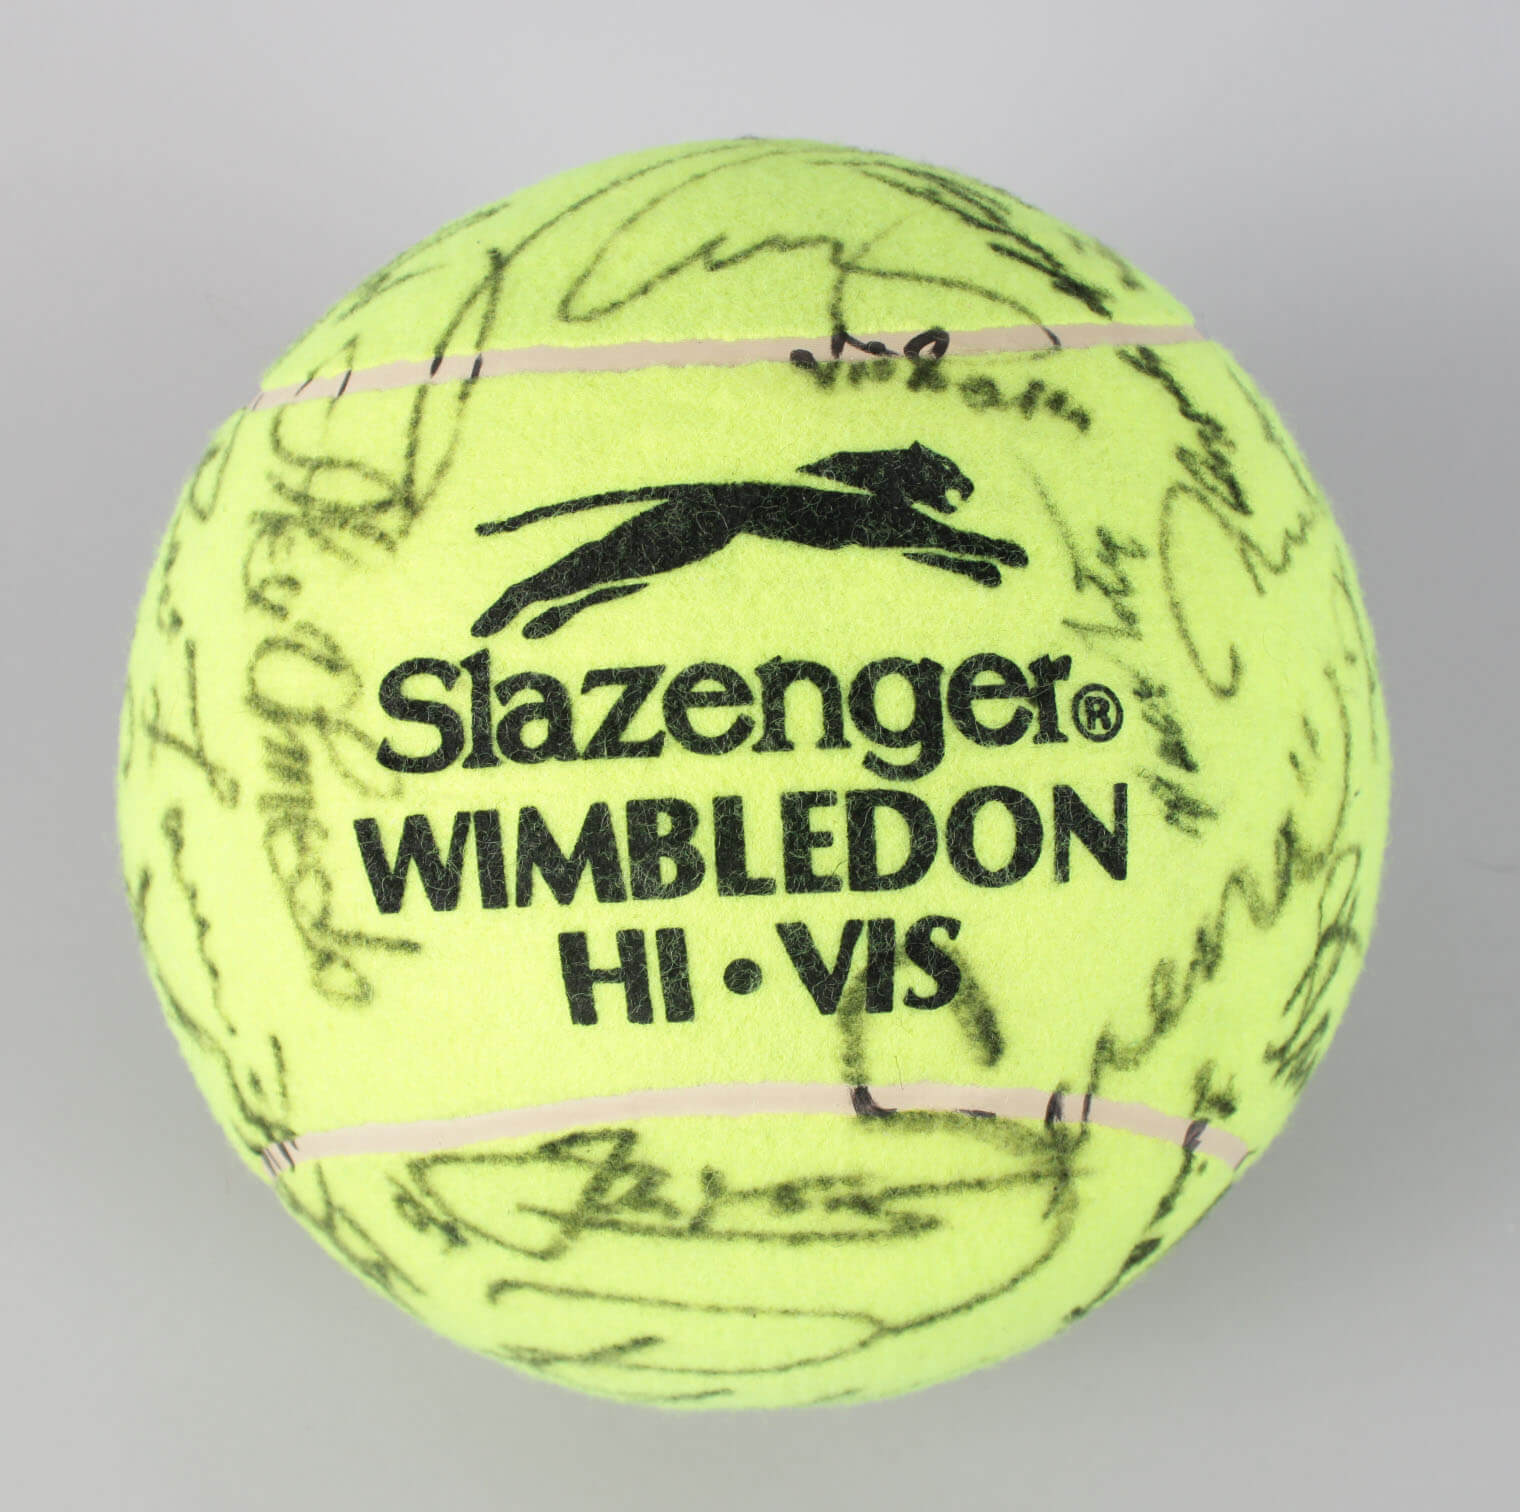 Wimbledon Winners Serena & Venus Williams, Agassi, McEnroe Multi-Signed Oversized Tennis Ball 30+etc. JSA Full LOA